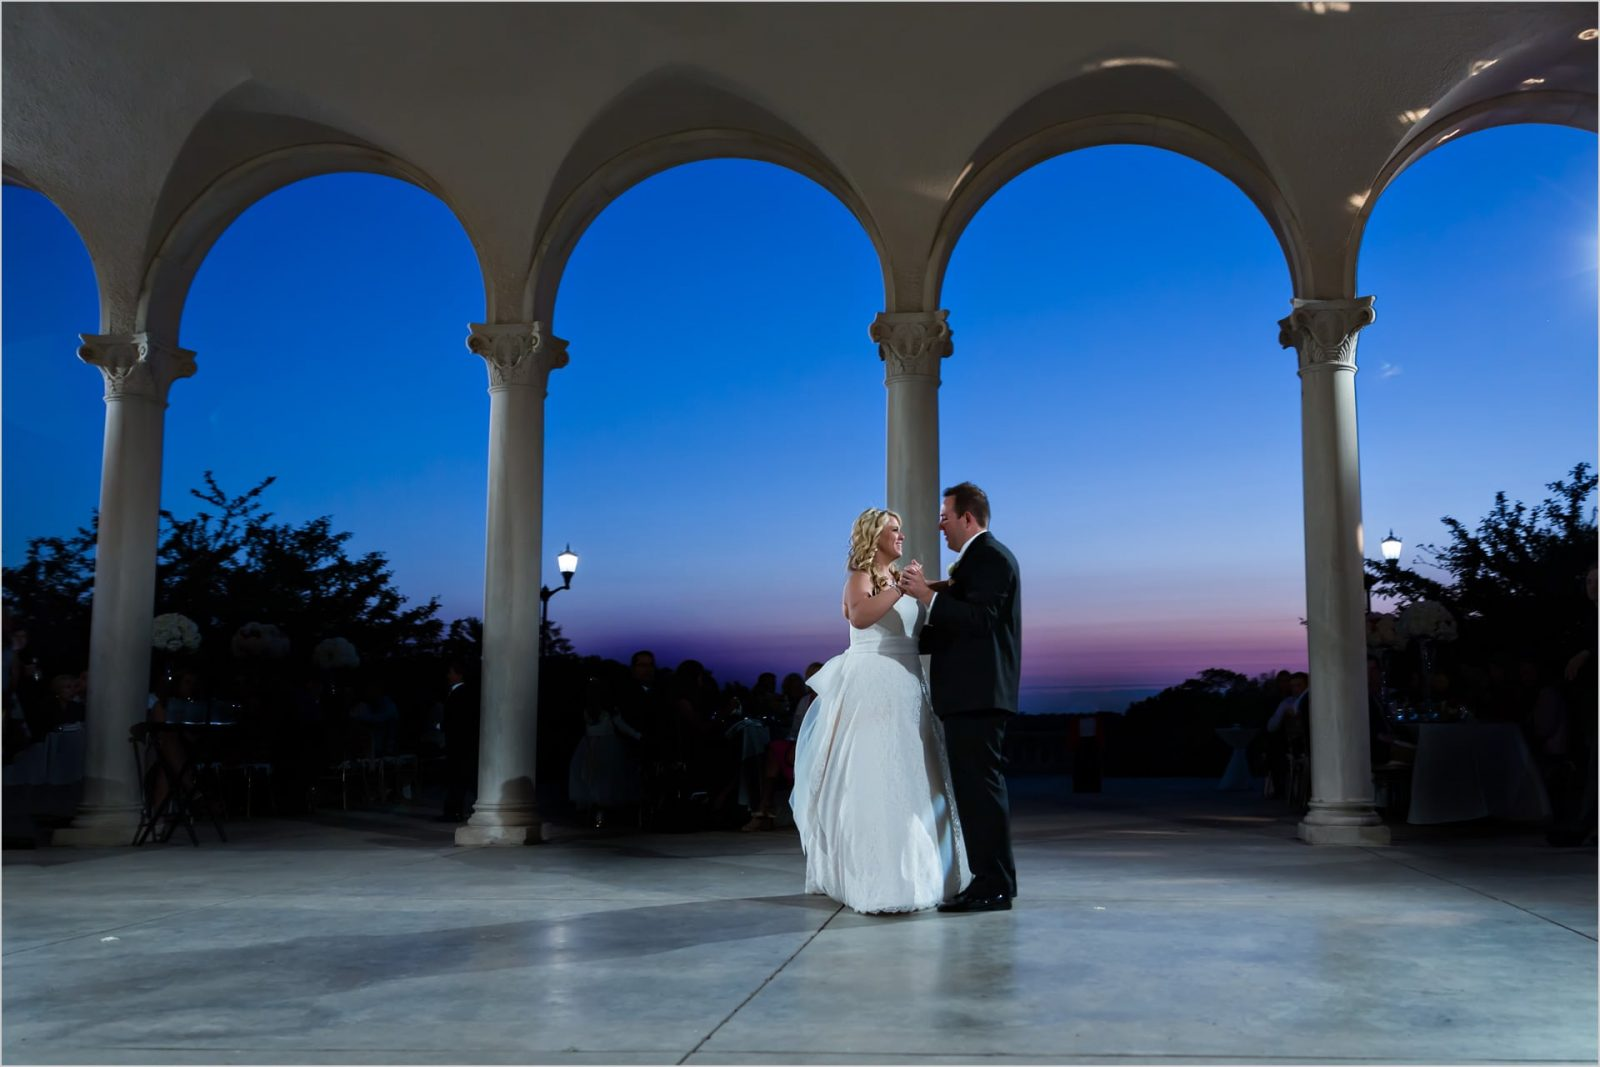 Ault Park Cincinnati wedding photography sunset